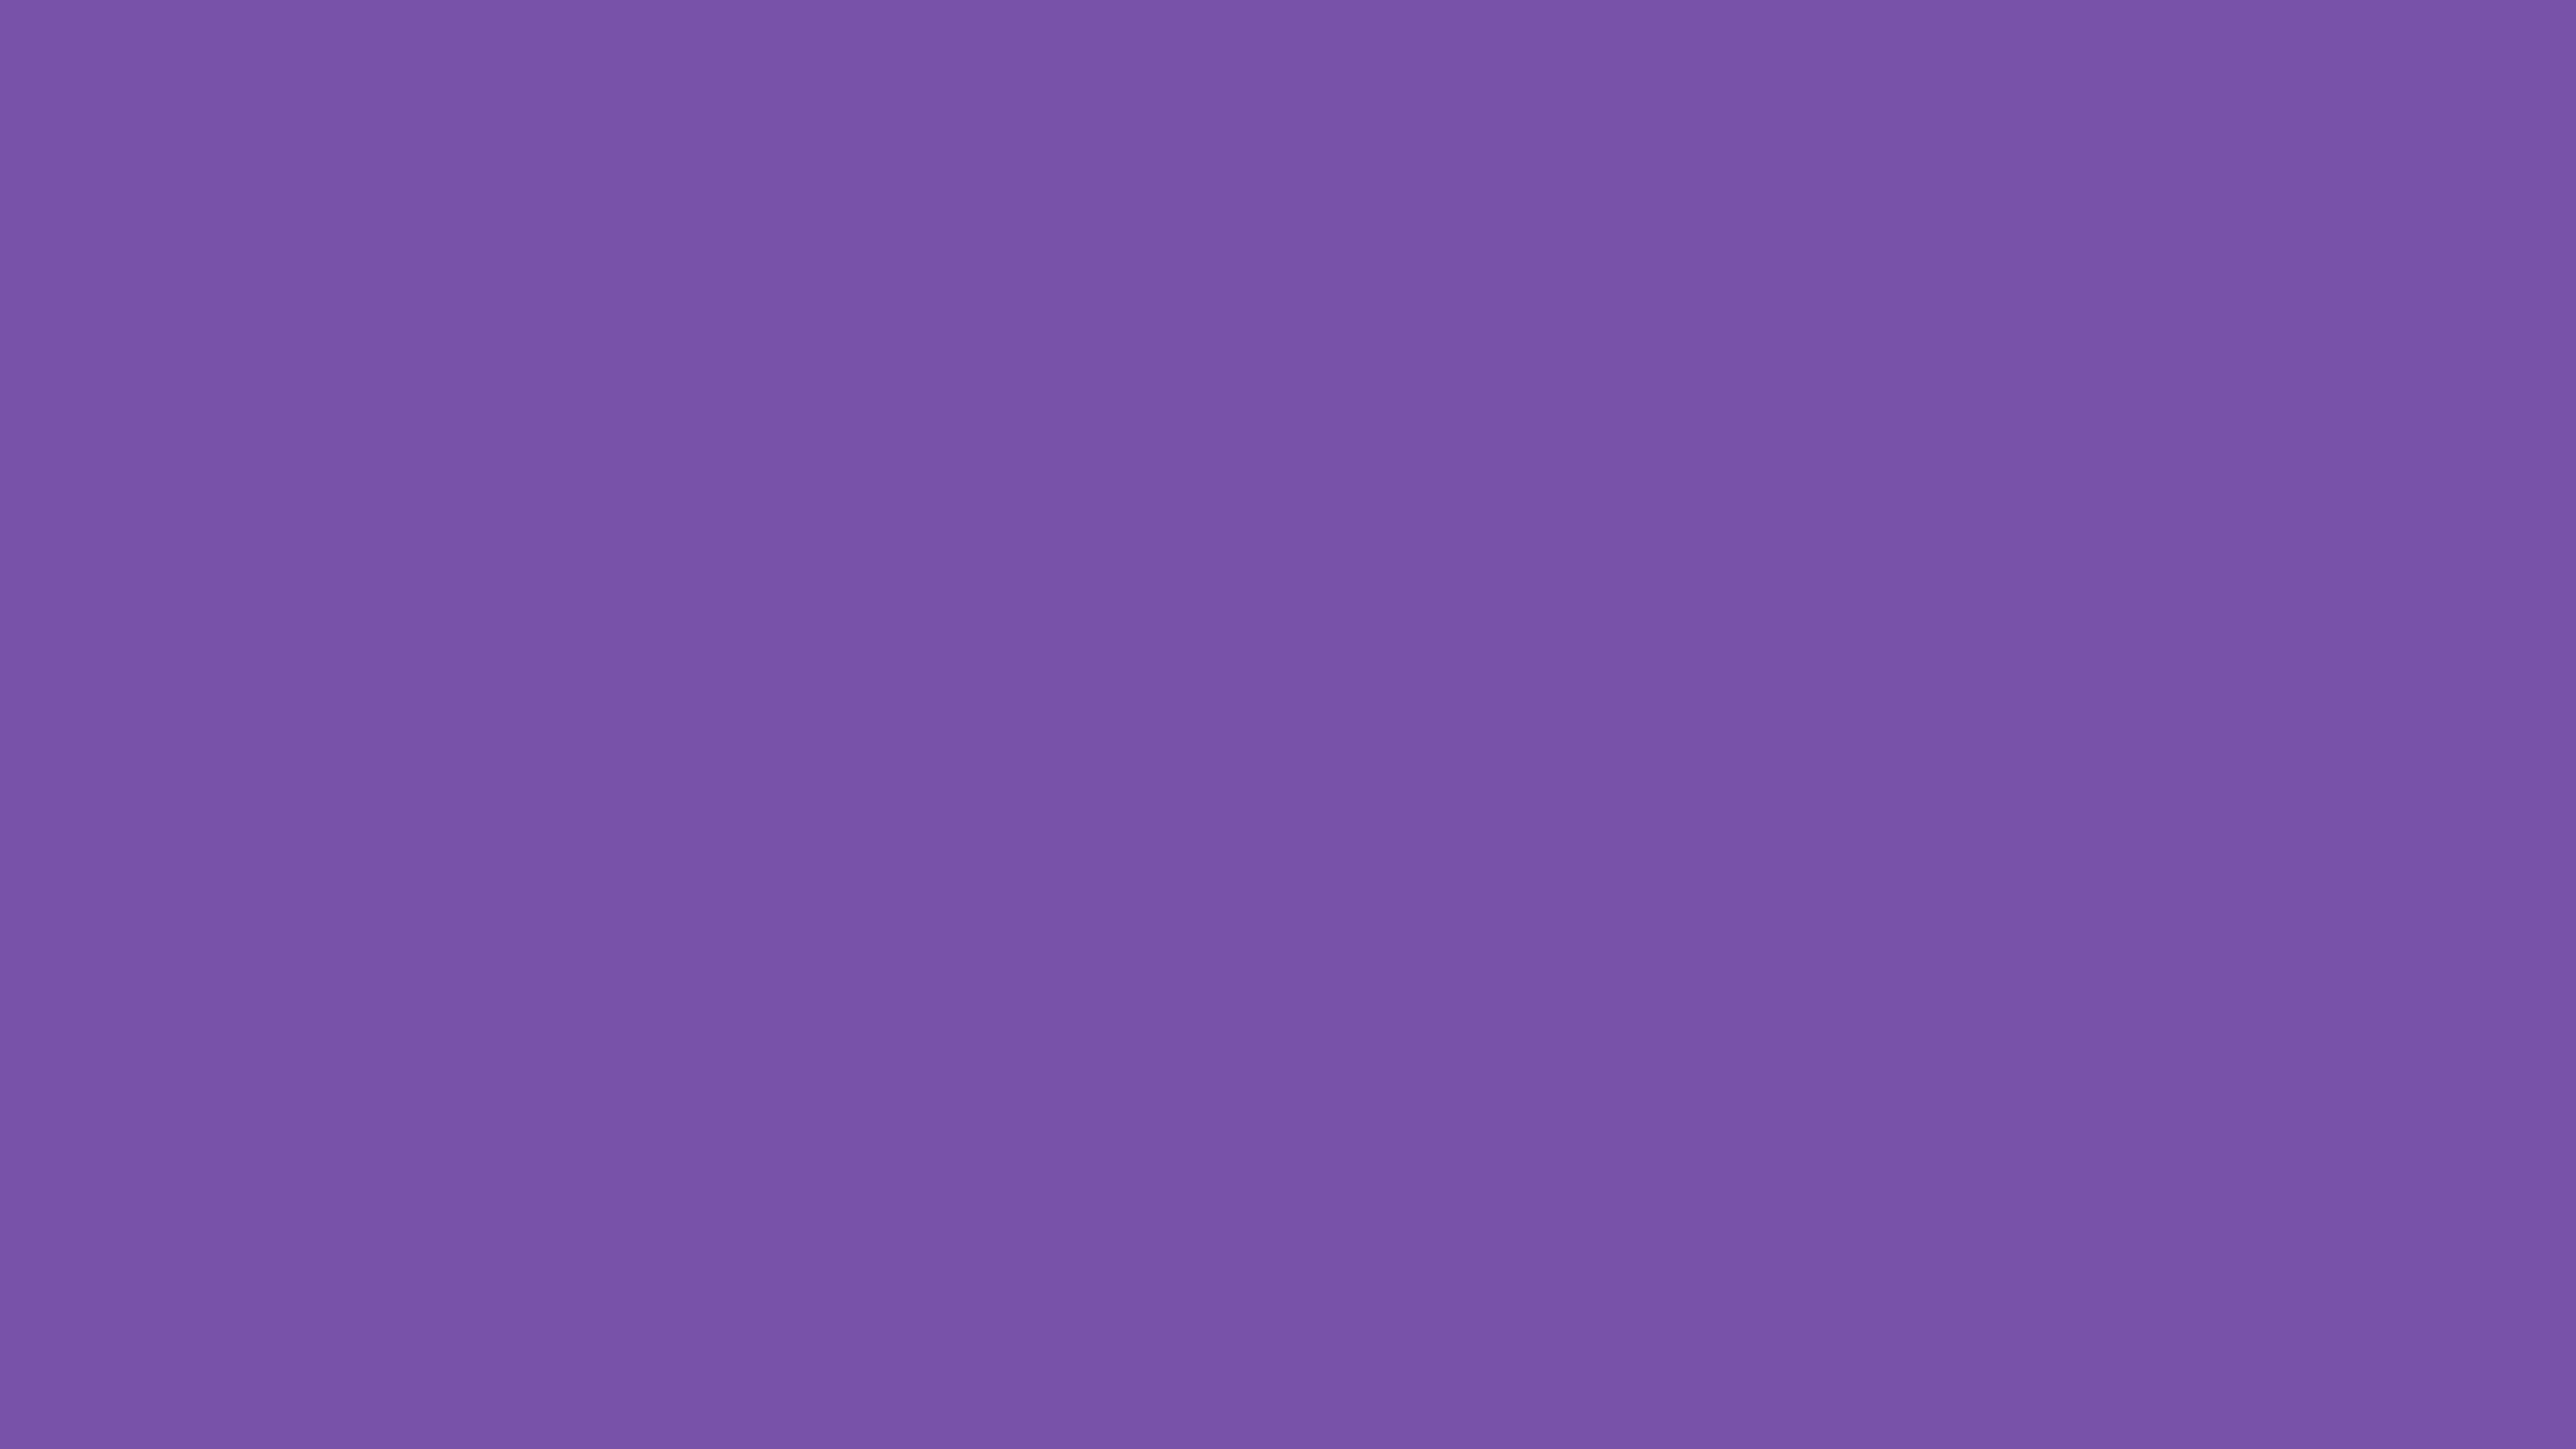 4096x2304 Royal Purple Solid Color Background